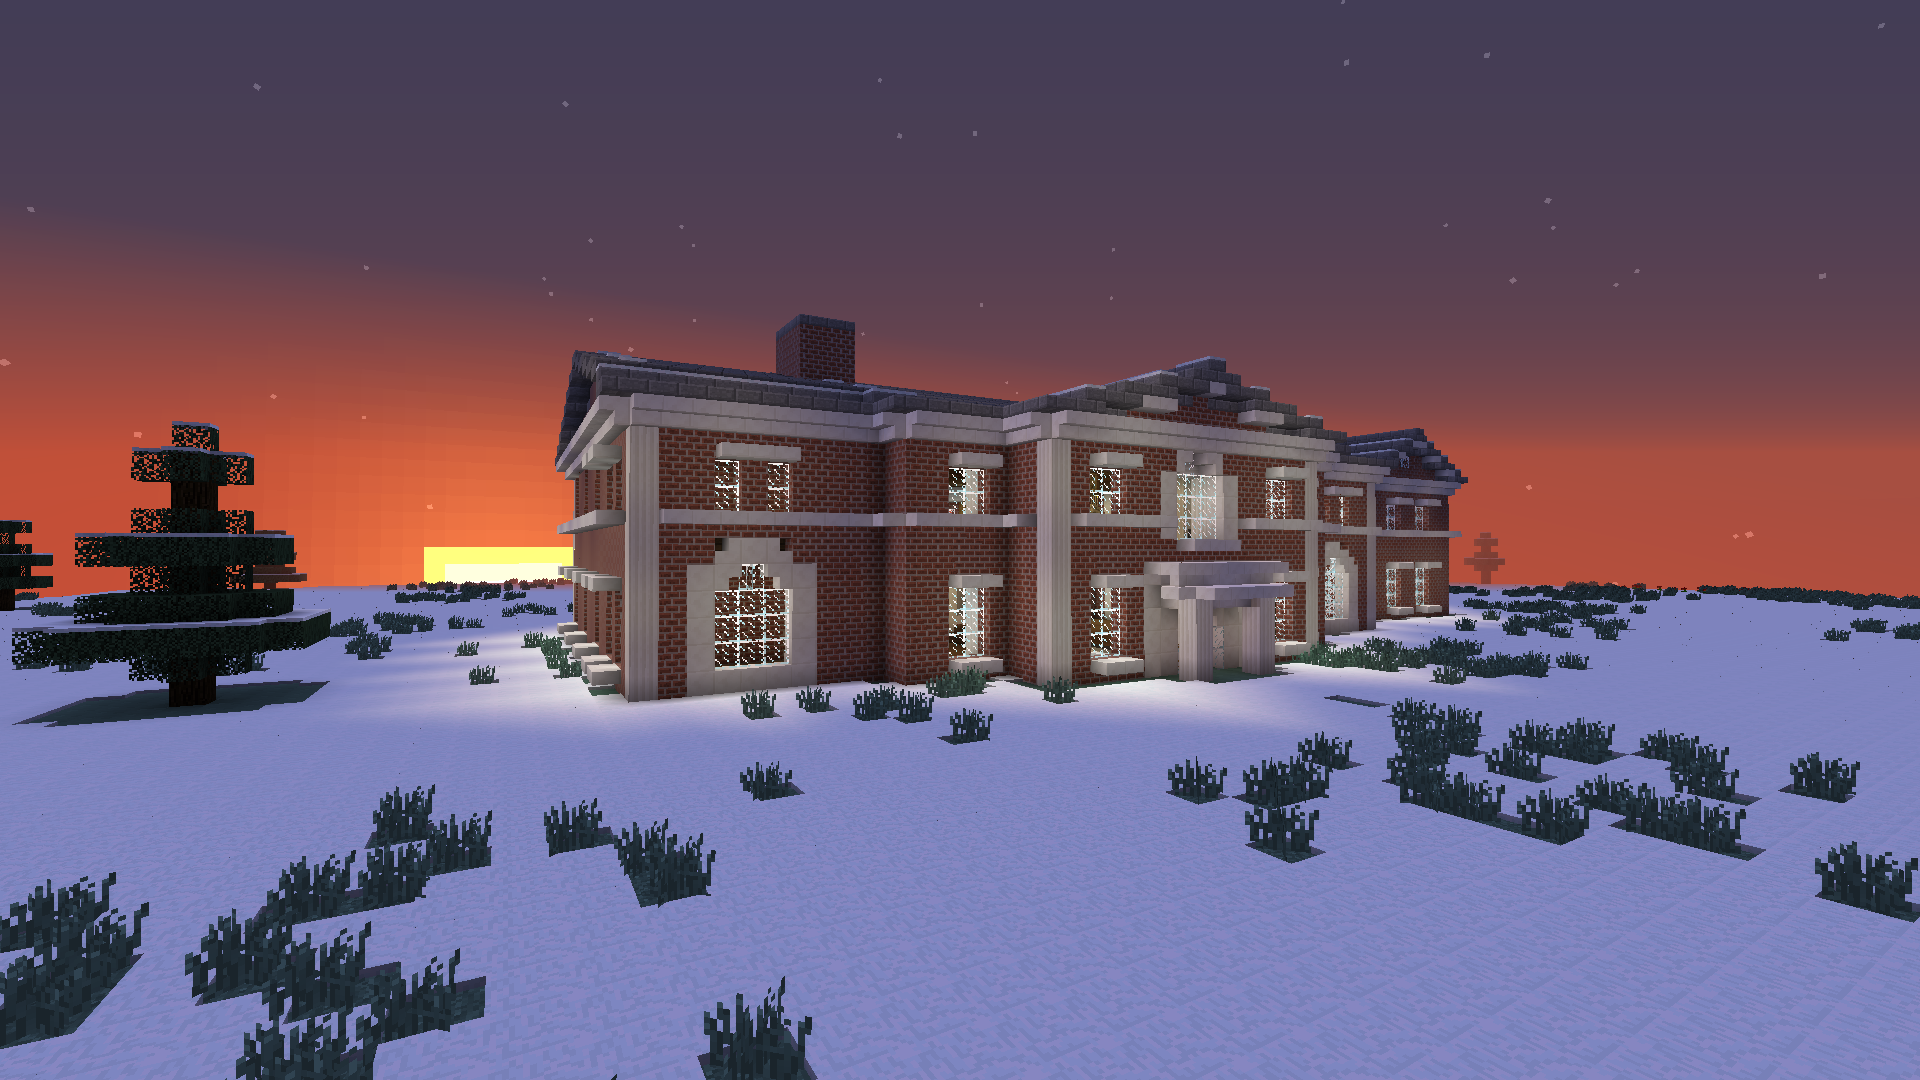 A View Of The Mansion I Built In Minecraft Mansions Minecraft Buildings House Styles